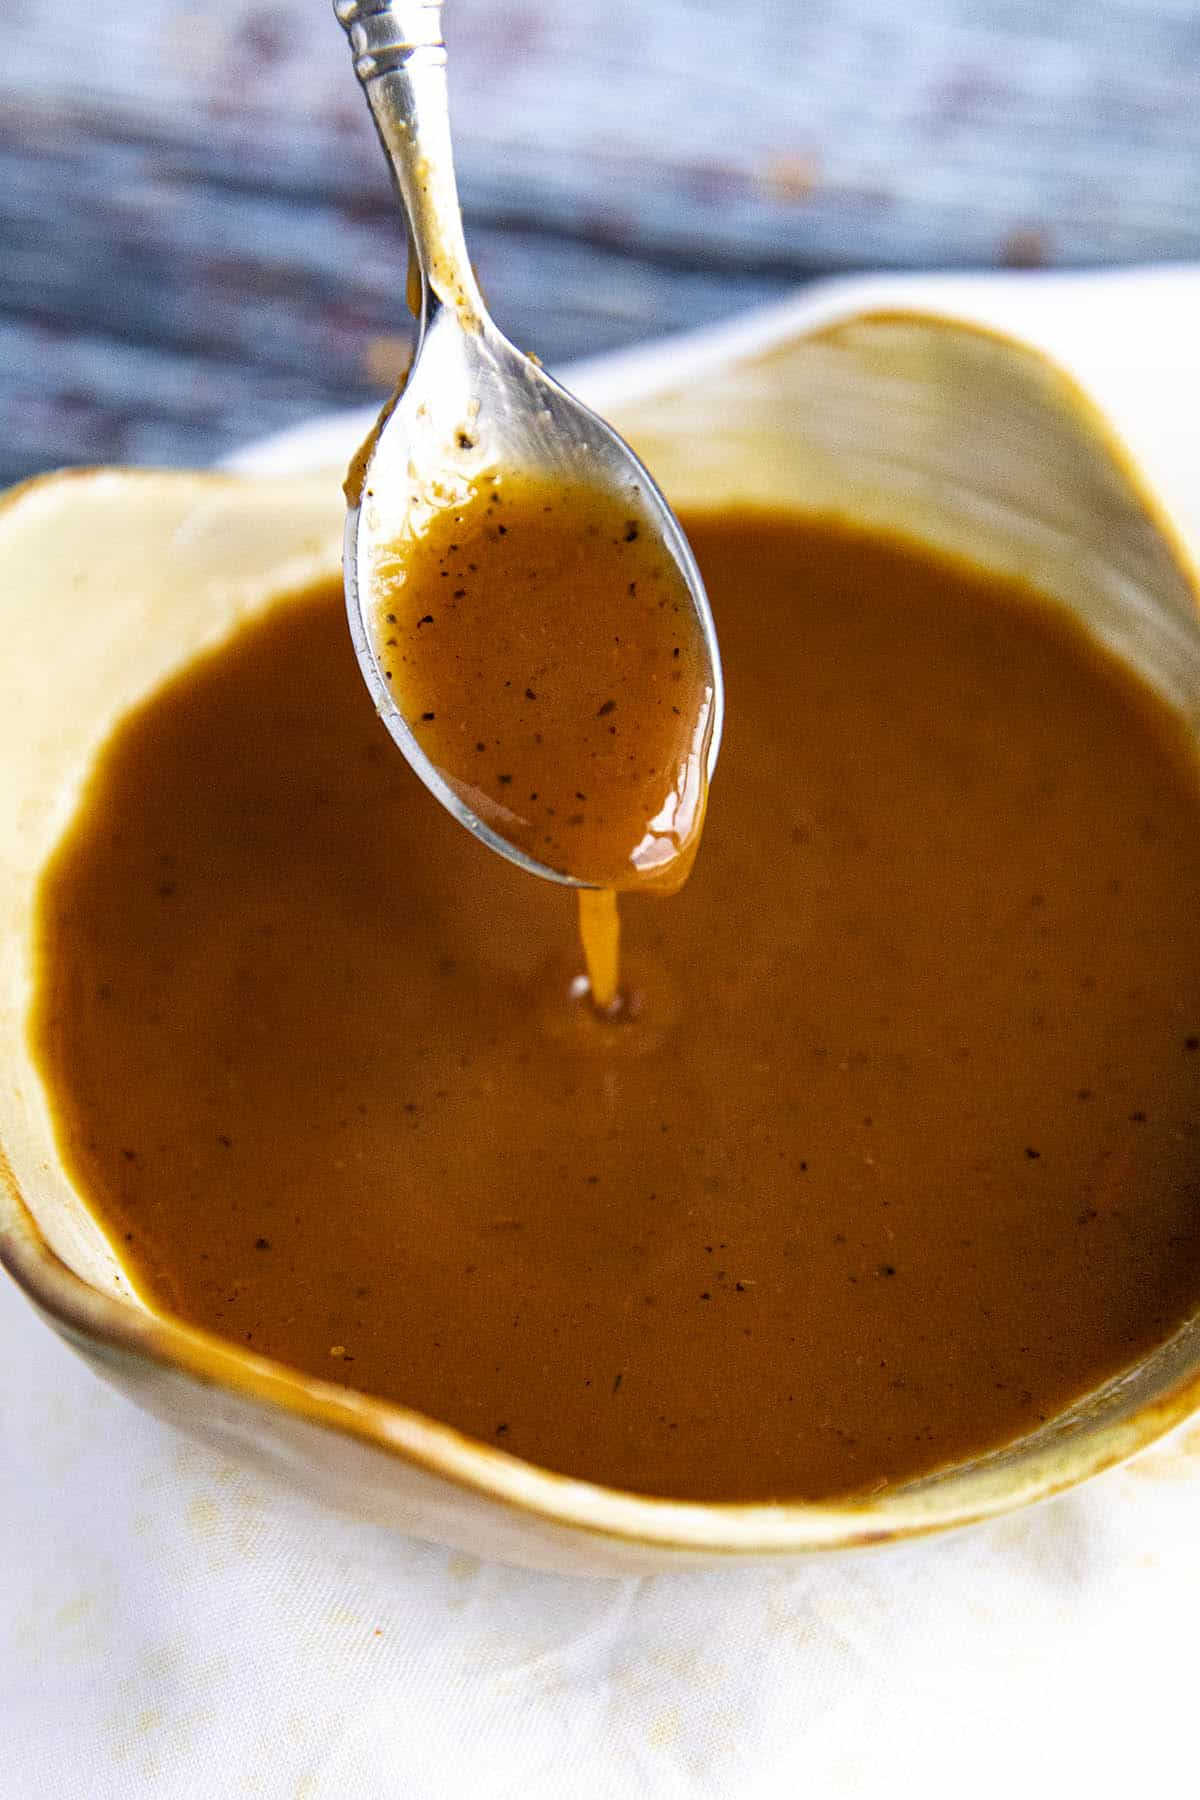 Tonkatsu Sauce dripping from a spoon